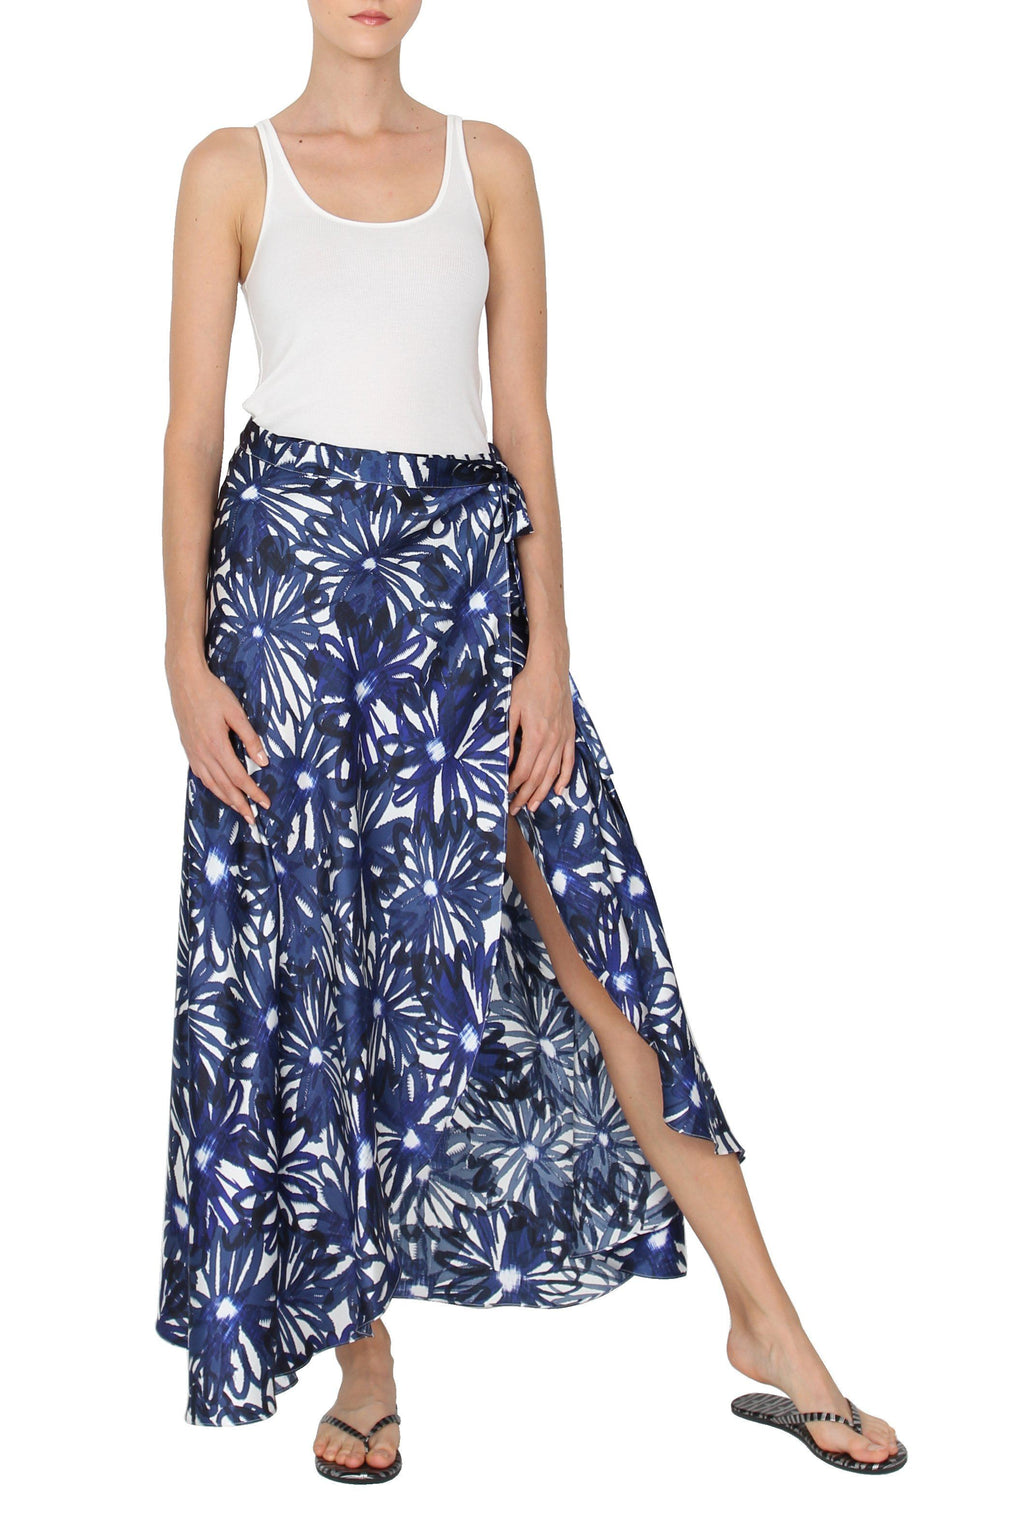 Wrapped Satin Skirt Marie France Van Damme 0 Blue Black Flower